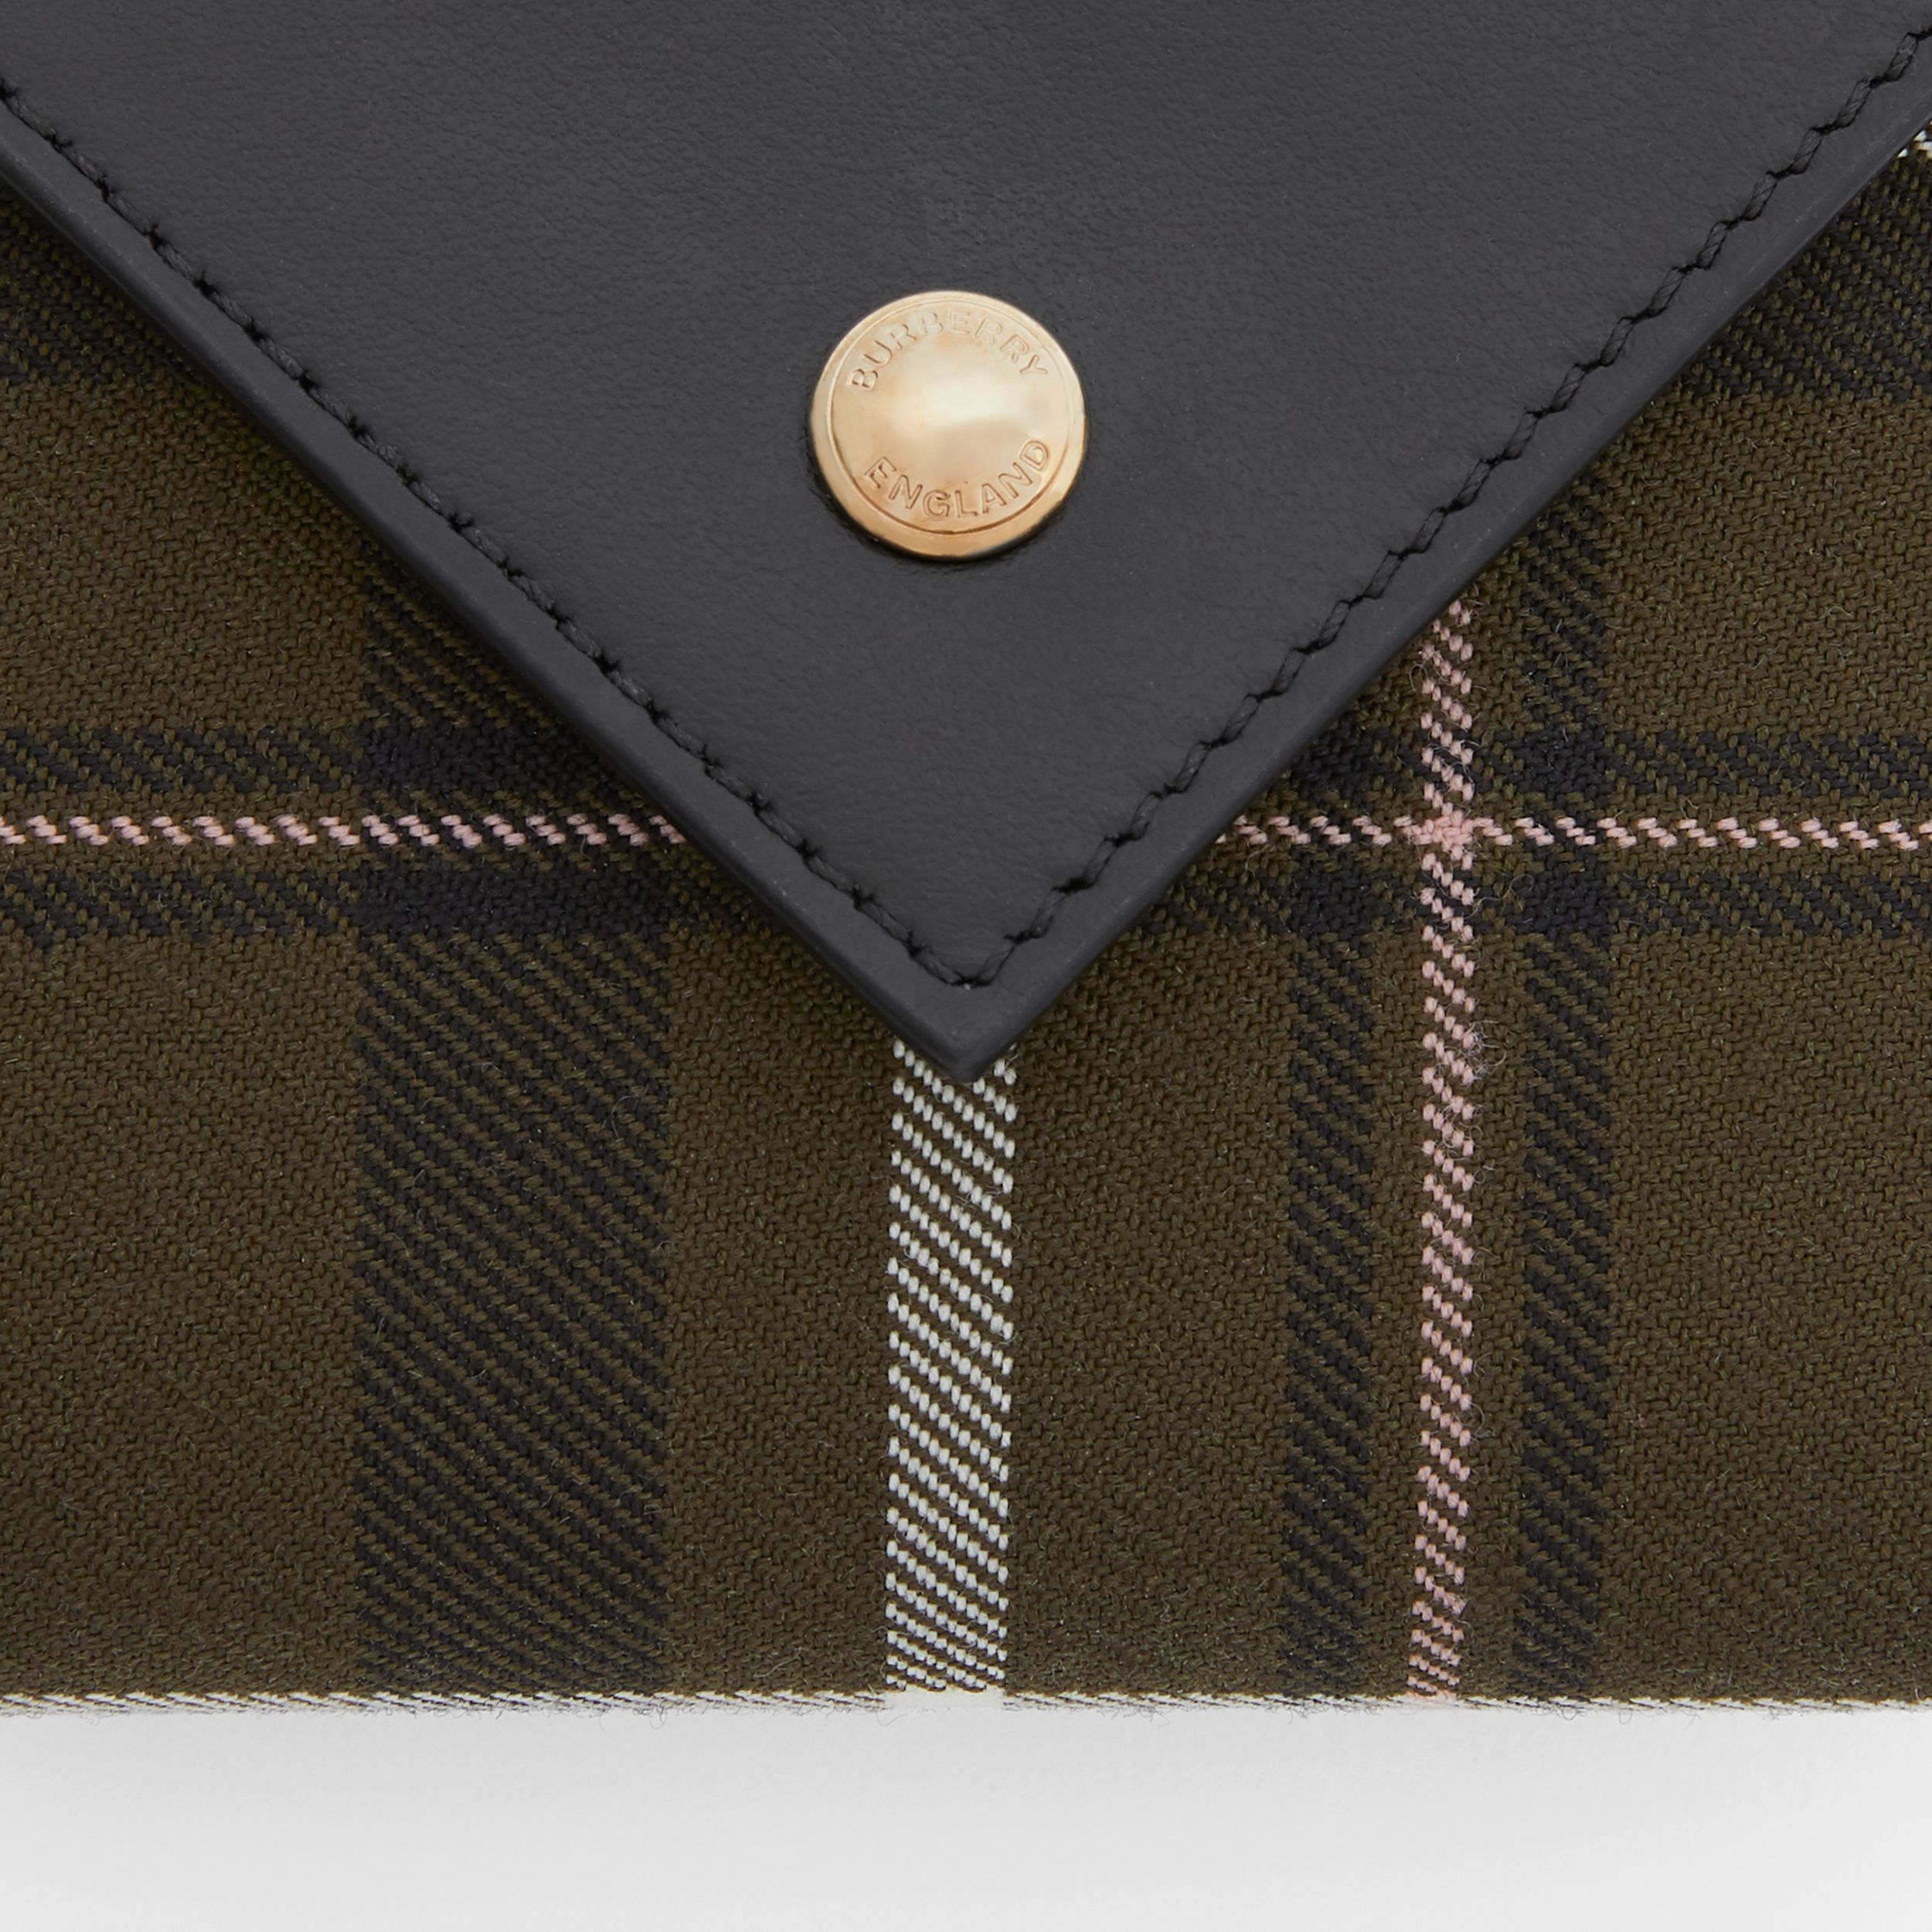 Tartan Wool and Leather Folding Wallet in Dark Green - Women | Burberry - 2